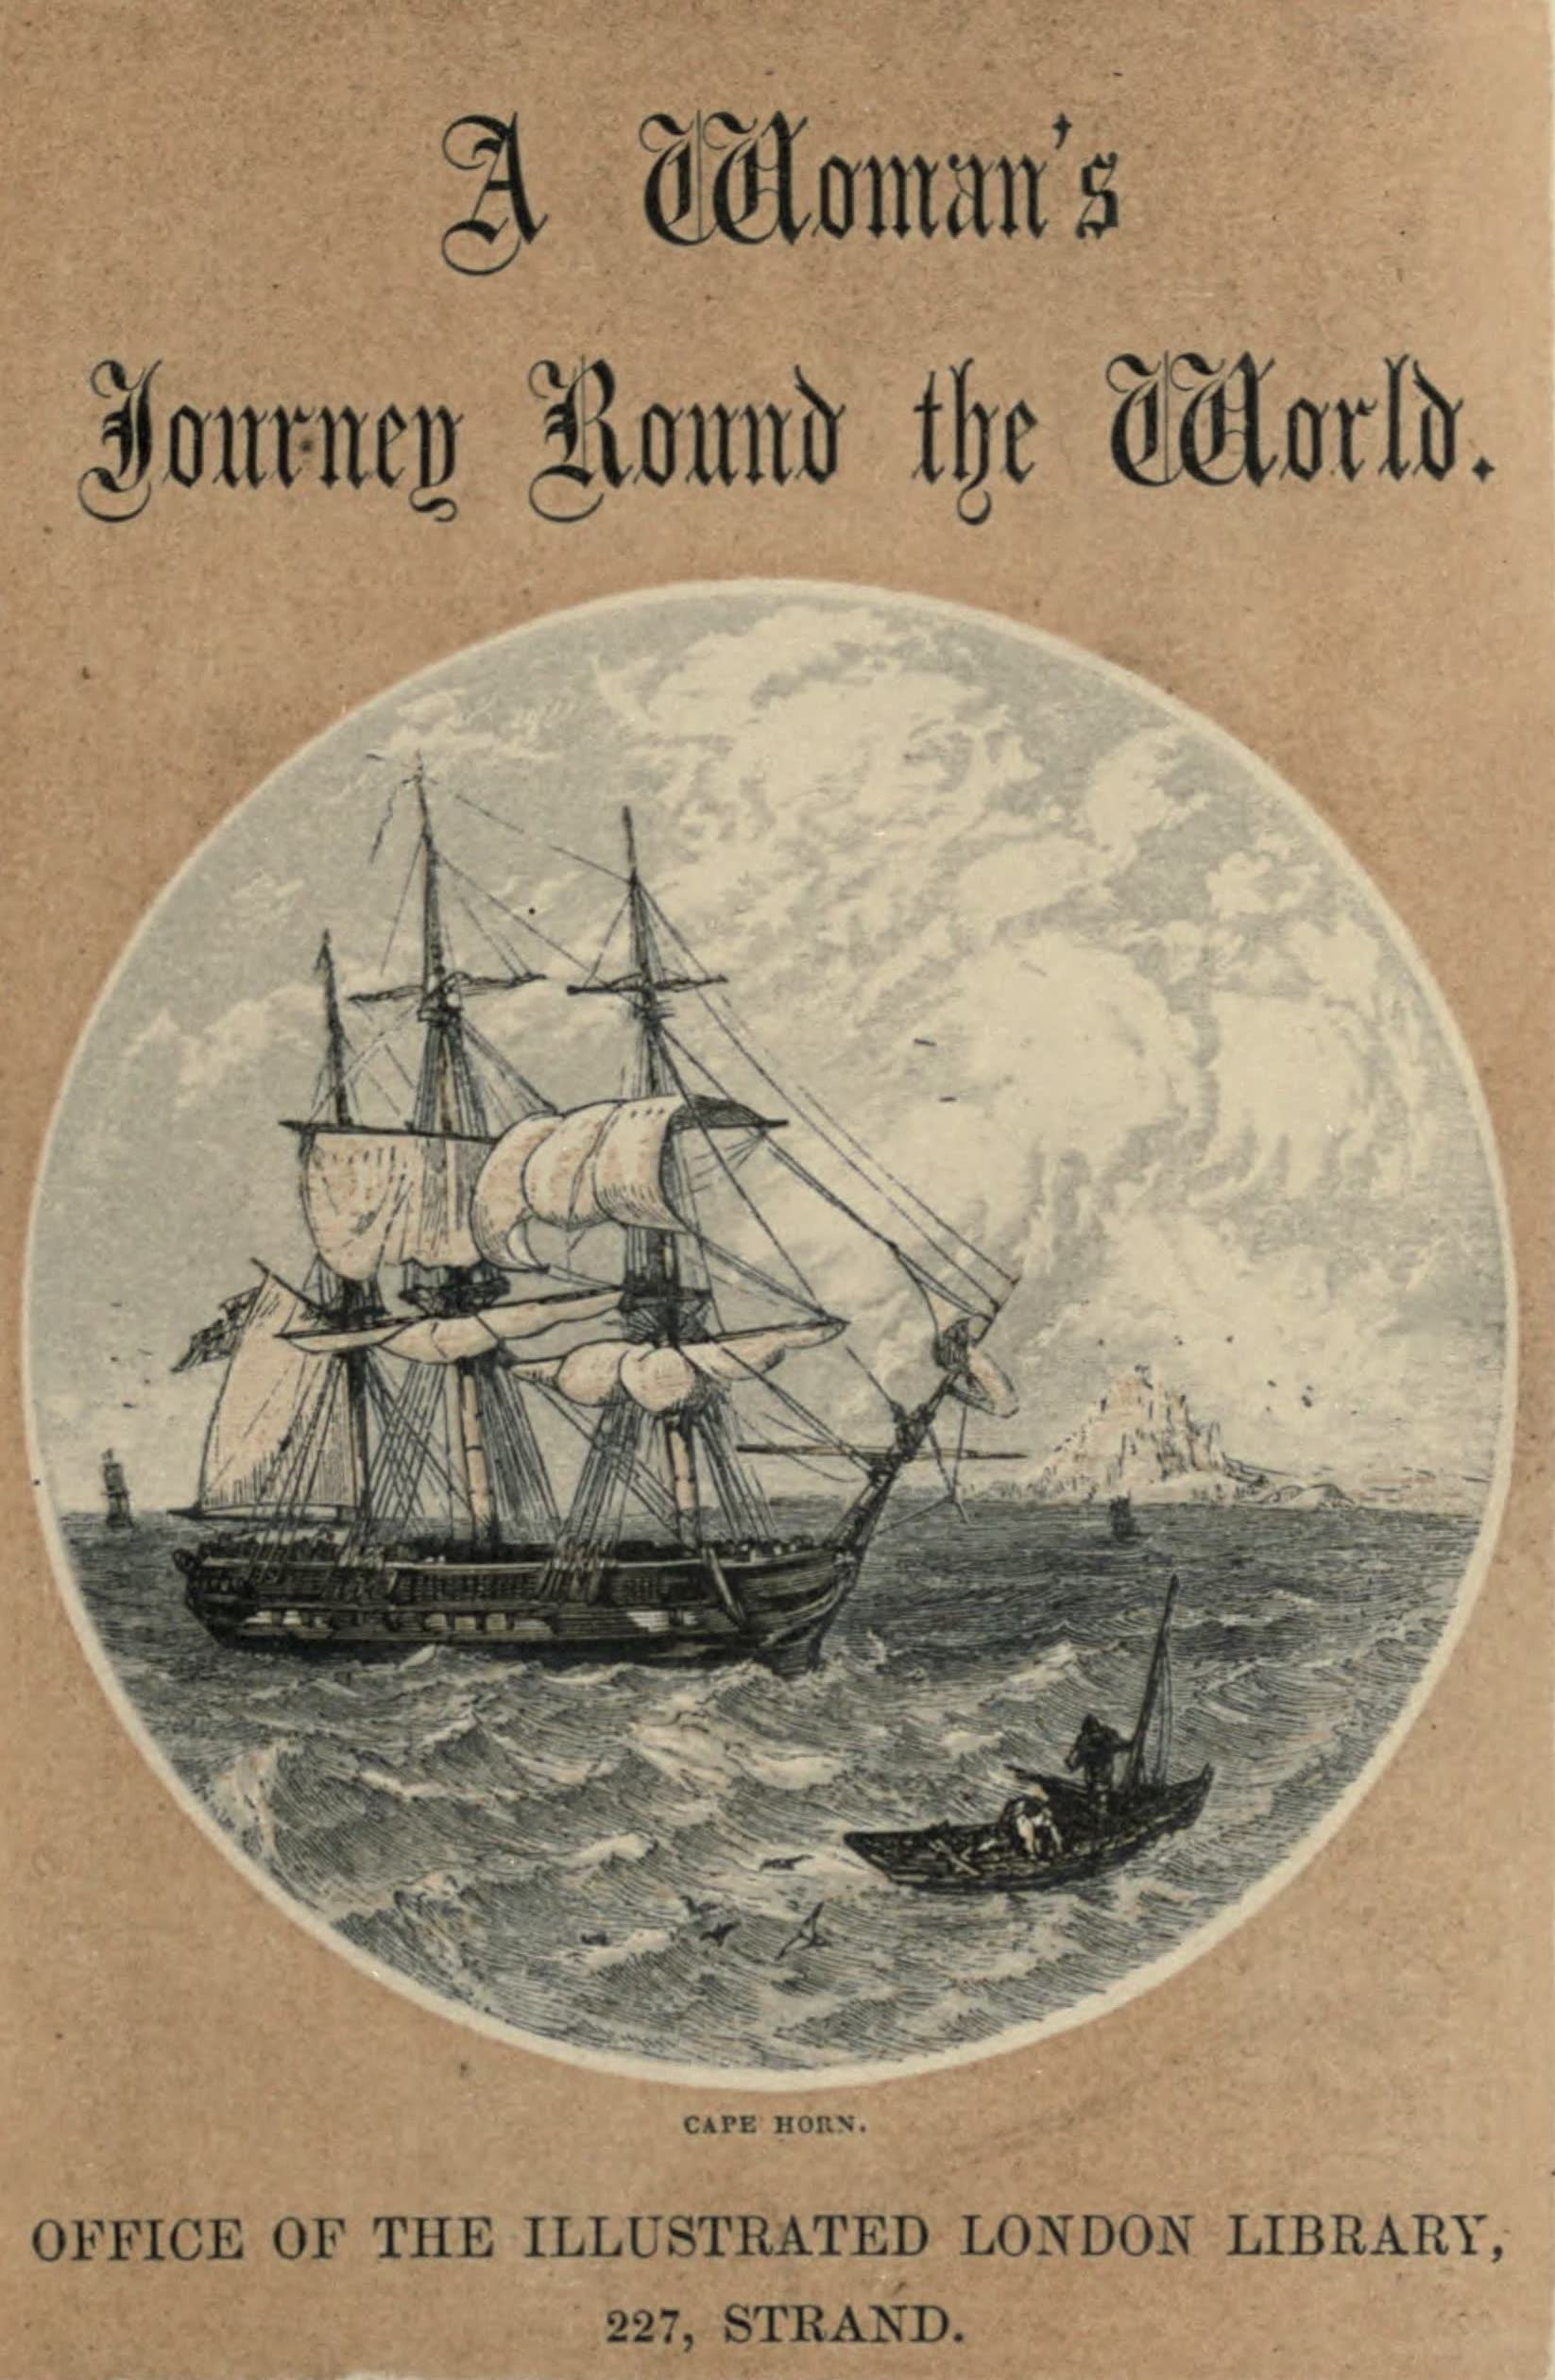 A Woman's Journey Round the World - Frontispiece (1852)